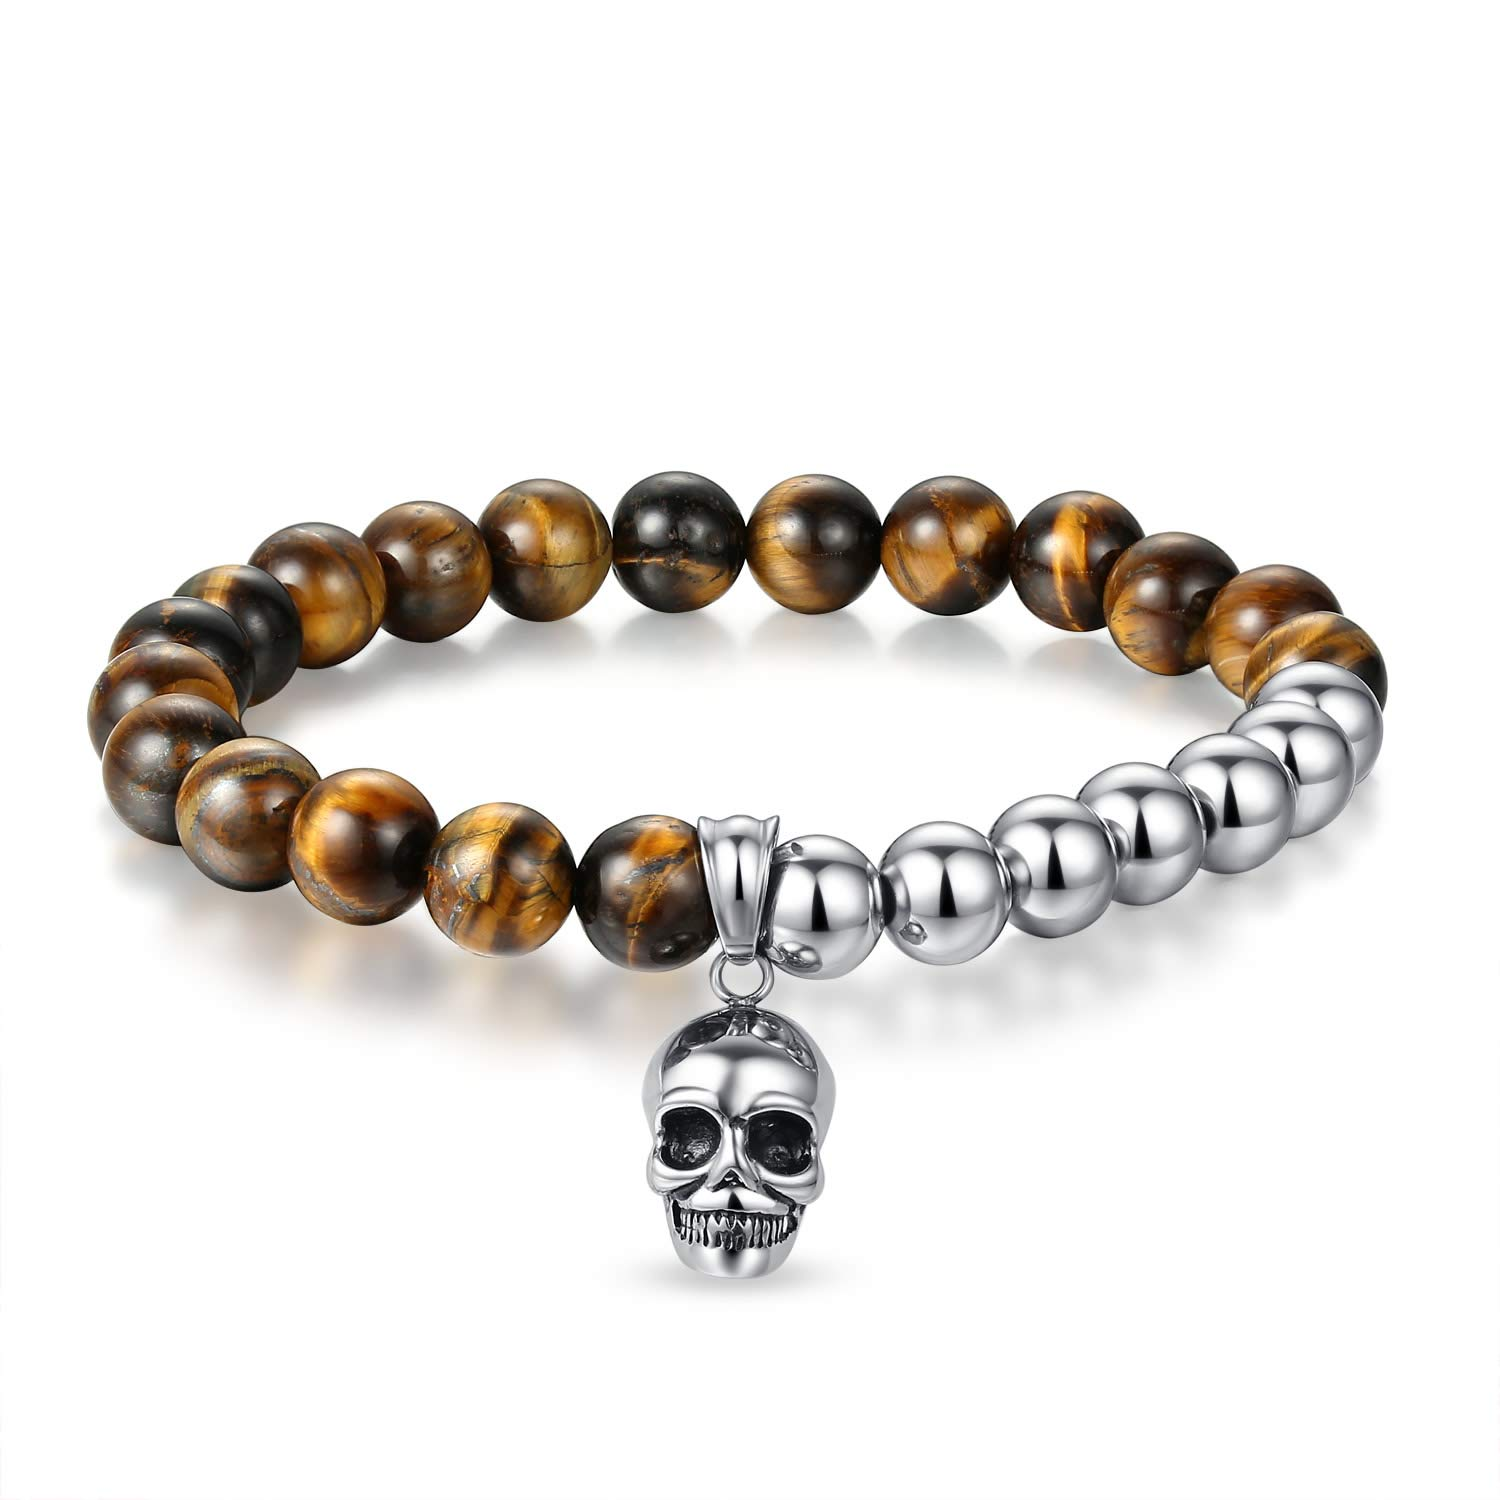 JSstudio Tiger Eye Bracelet, Stress Relief Natural Crystals and Healing Stones Energy Yoga Prayer Bead Bracelet for Men Women Unisex Couples, Viking Hippie Devil Skull Gemtone Mens Anxiety Bracelets